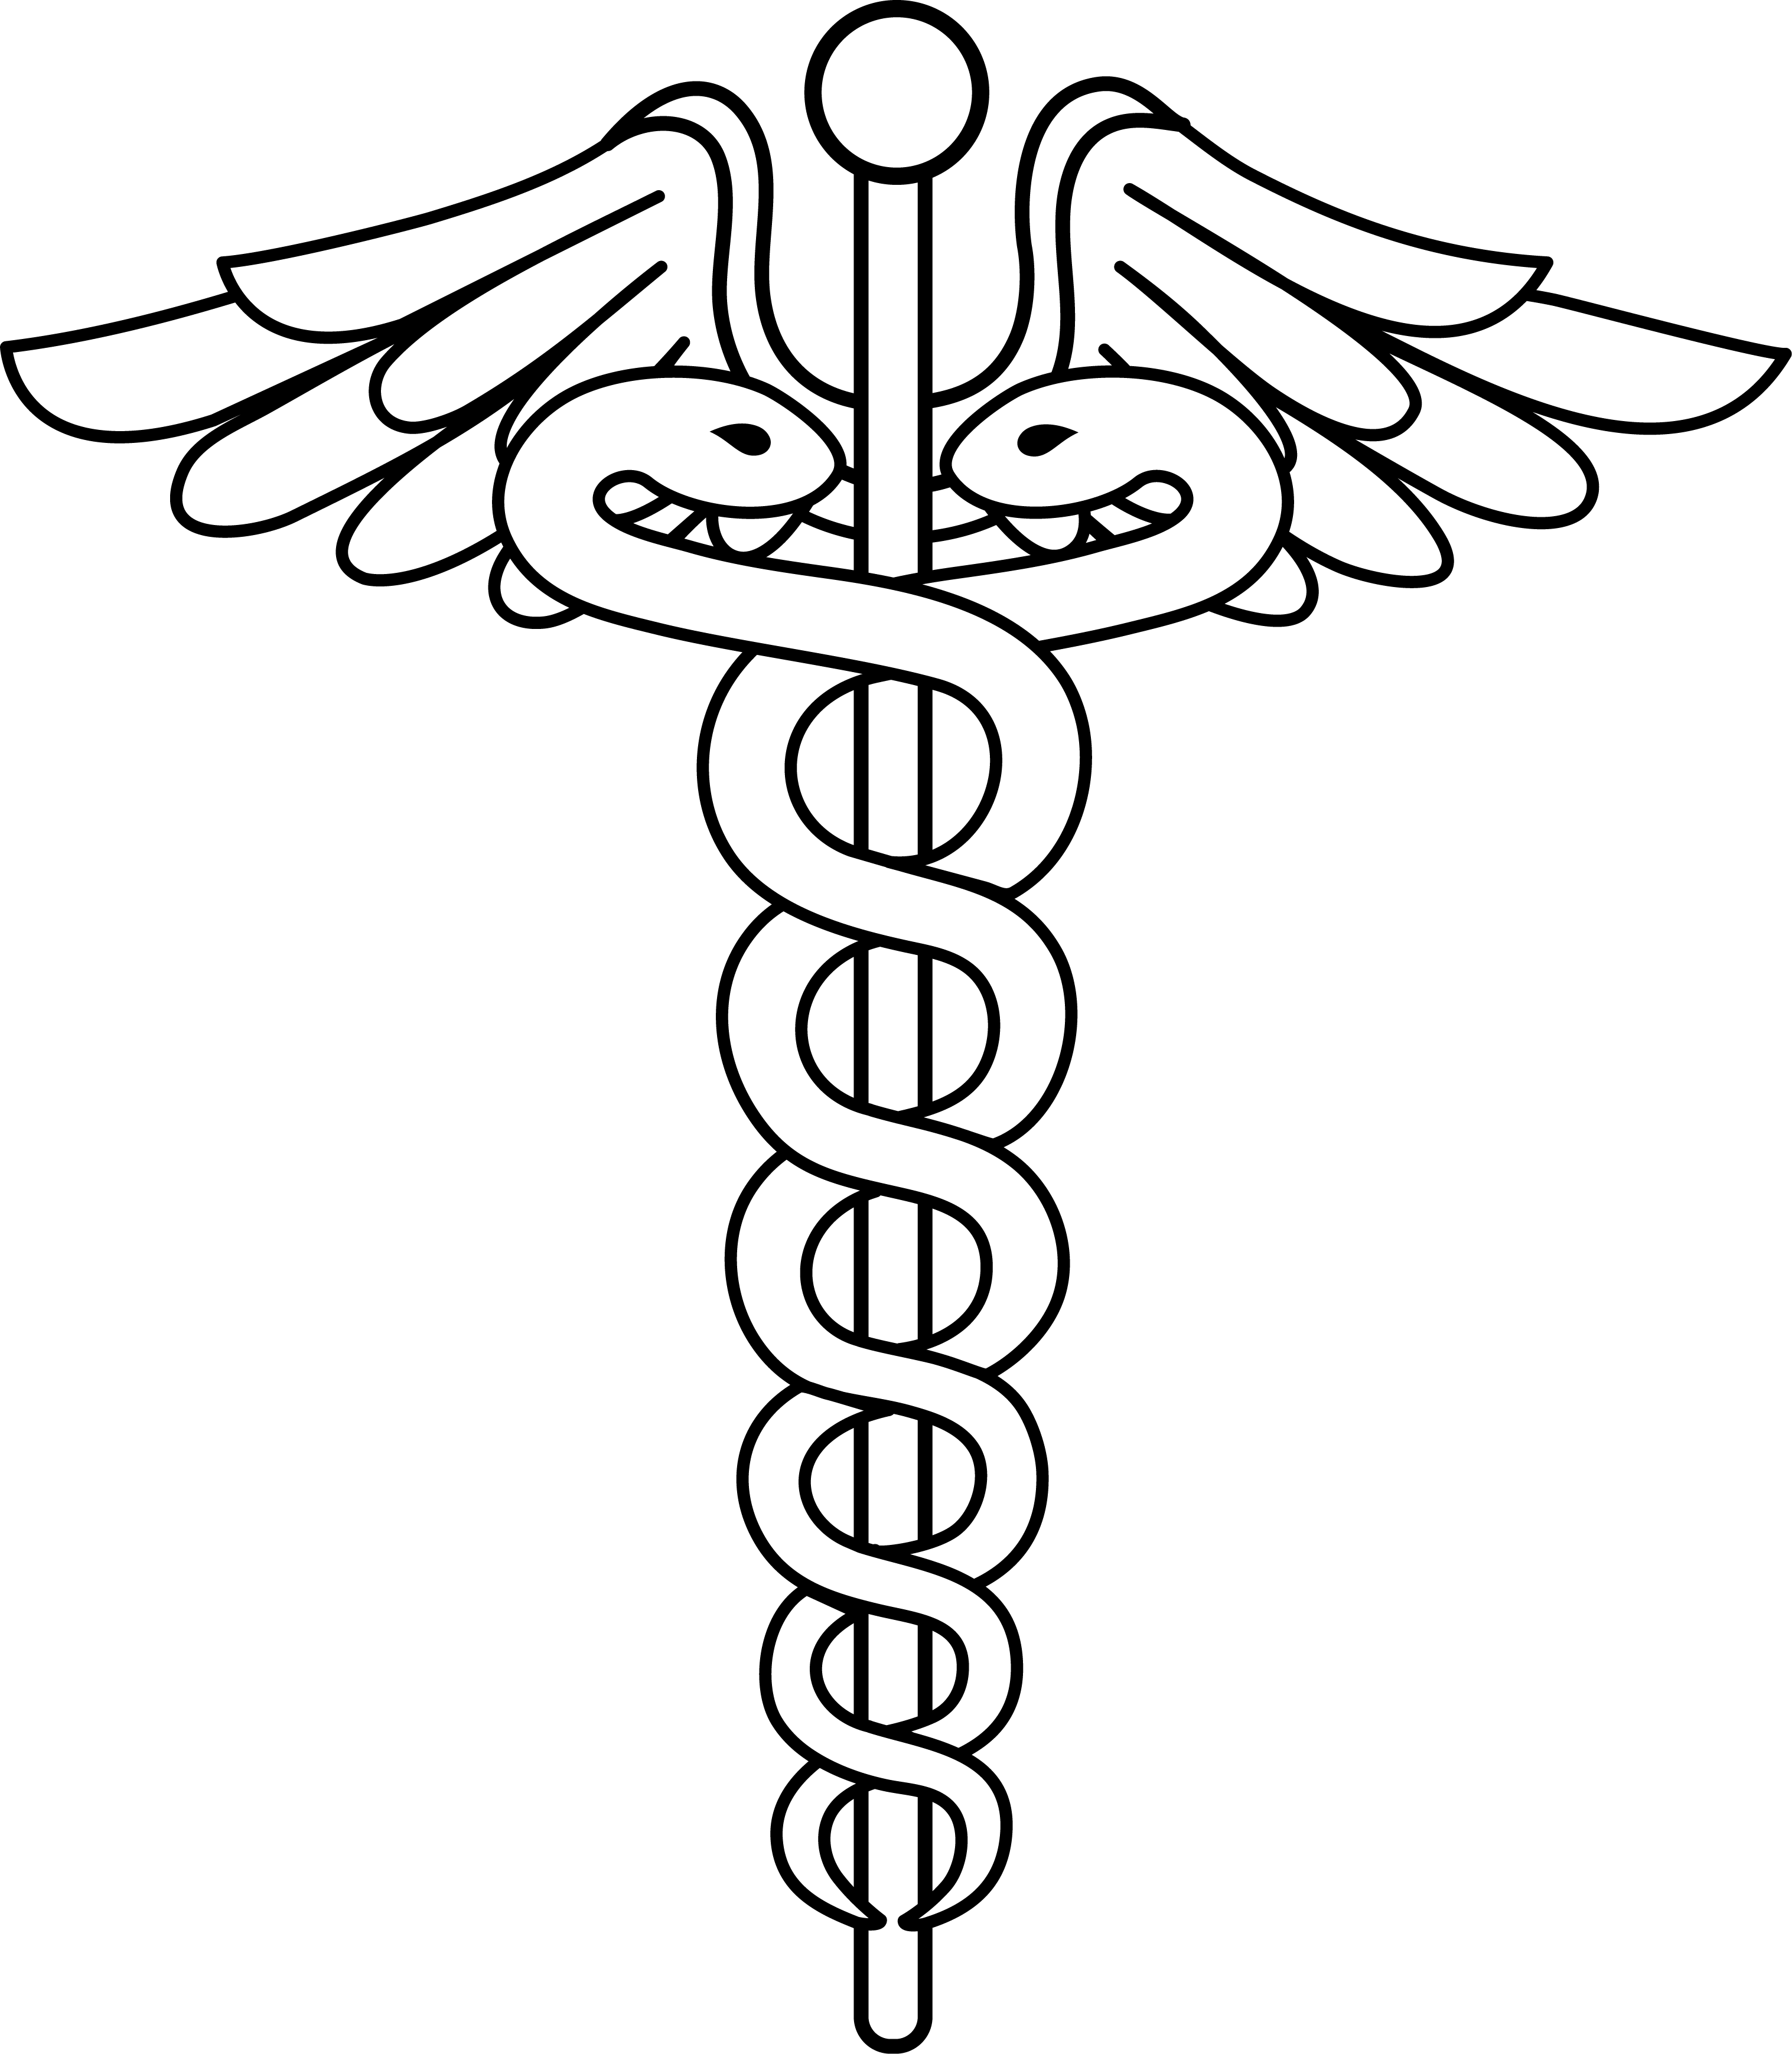 Free Caducei Cliparts Download Free Clip Art Free Clip